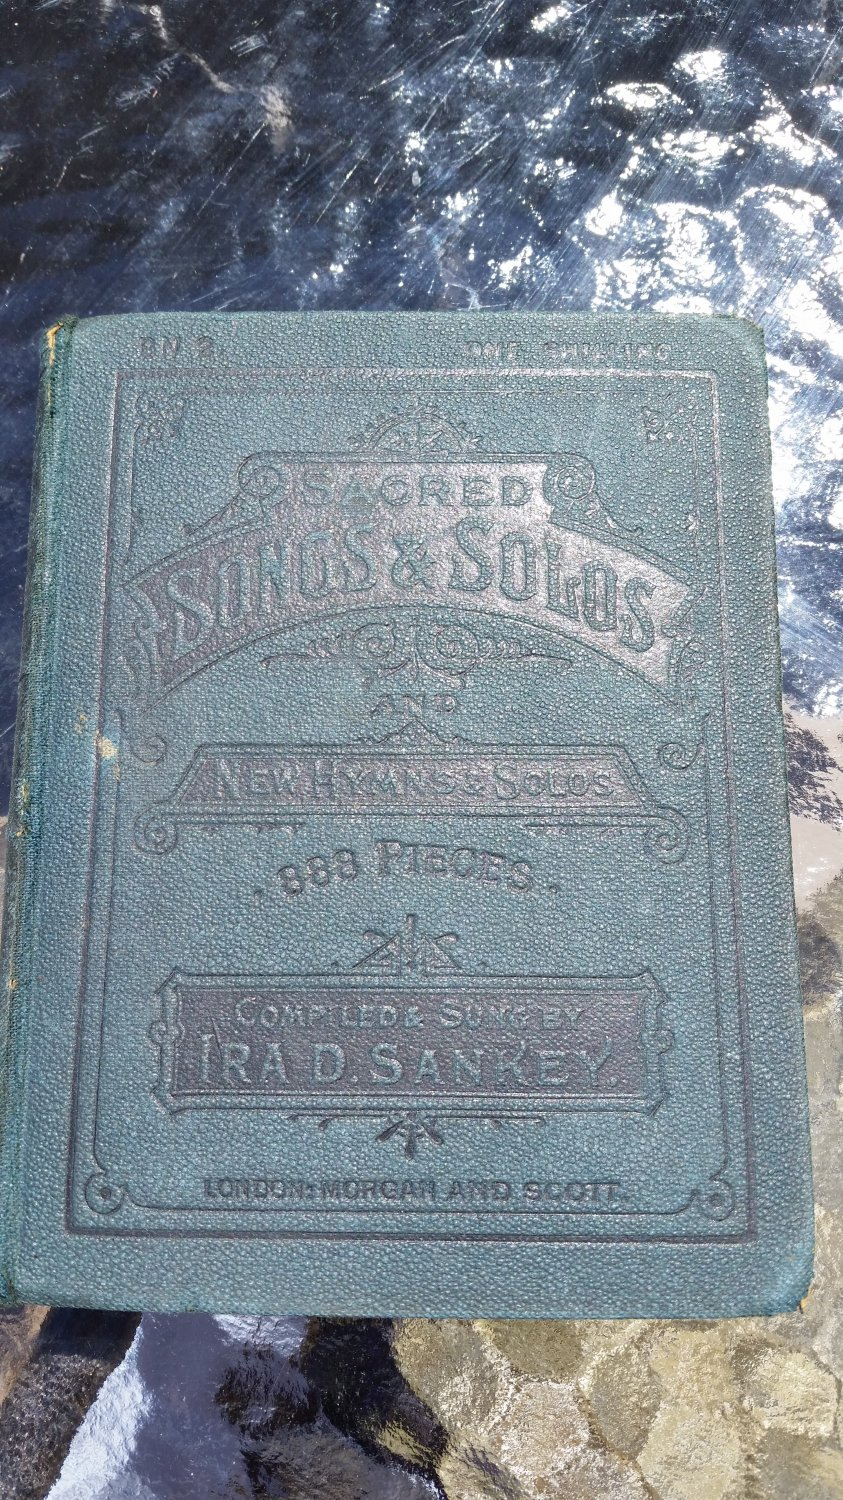 Sacred Songs and Solos and New Hymns and Solos 888 pieces by Ira D Sankey - 1925!